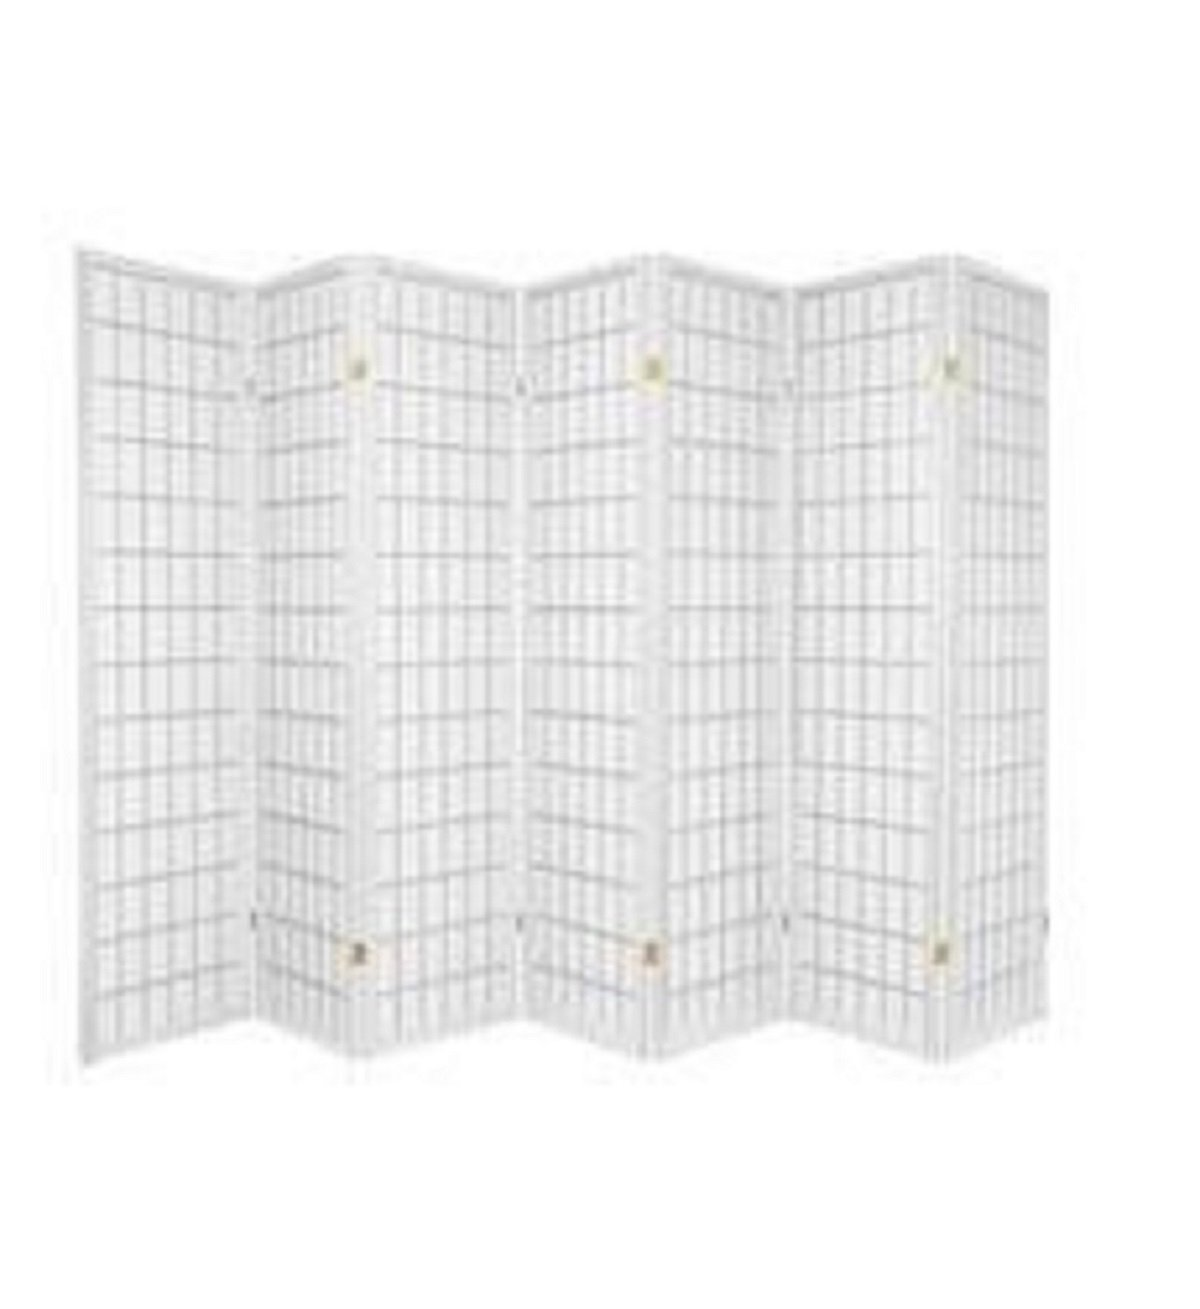 7 Panel Room Divider - Cherry SQUARE FURNITURE 04CH-7